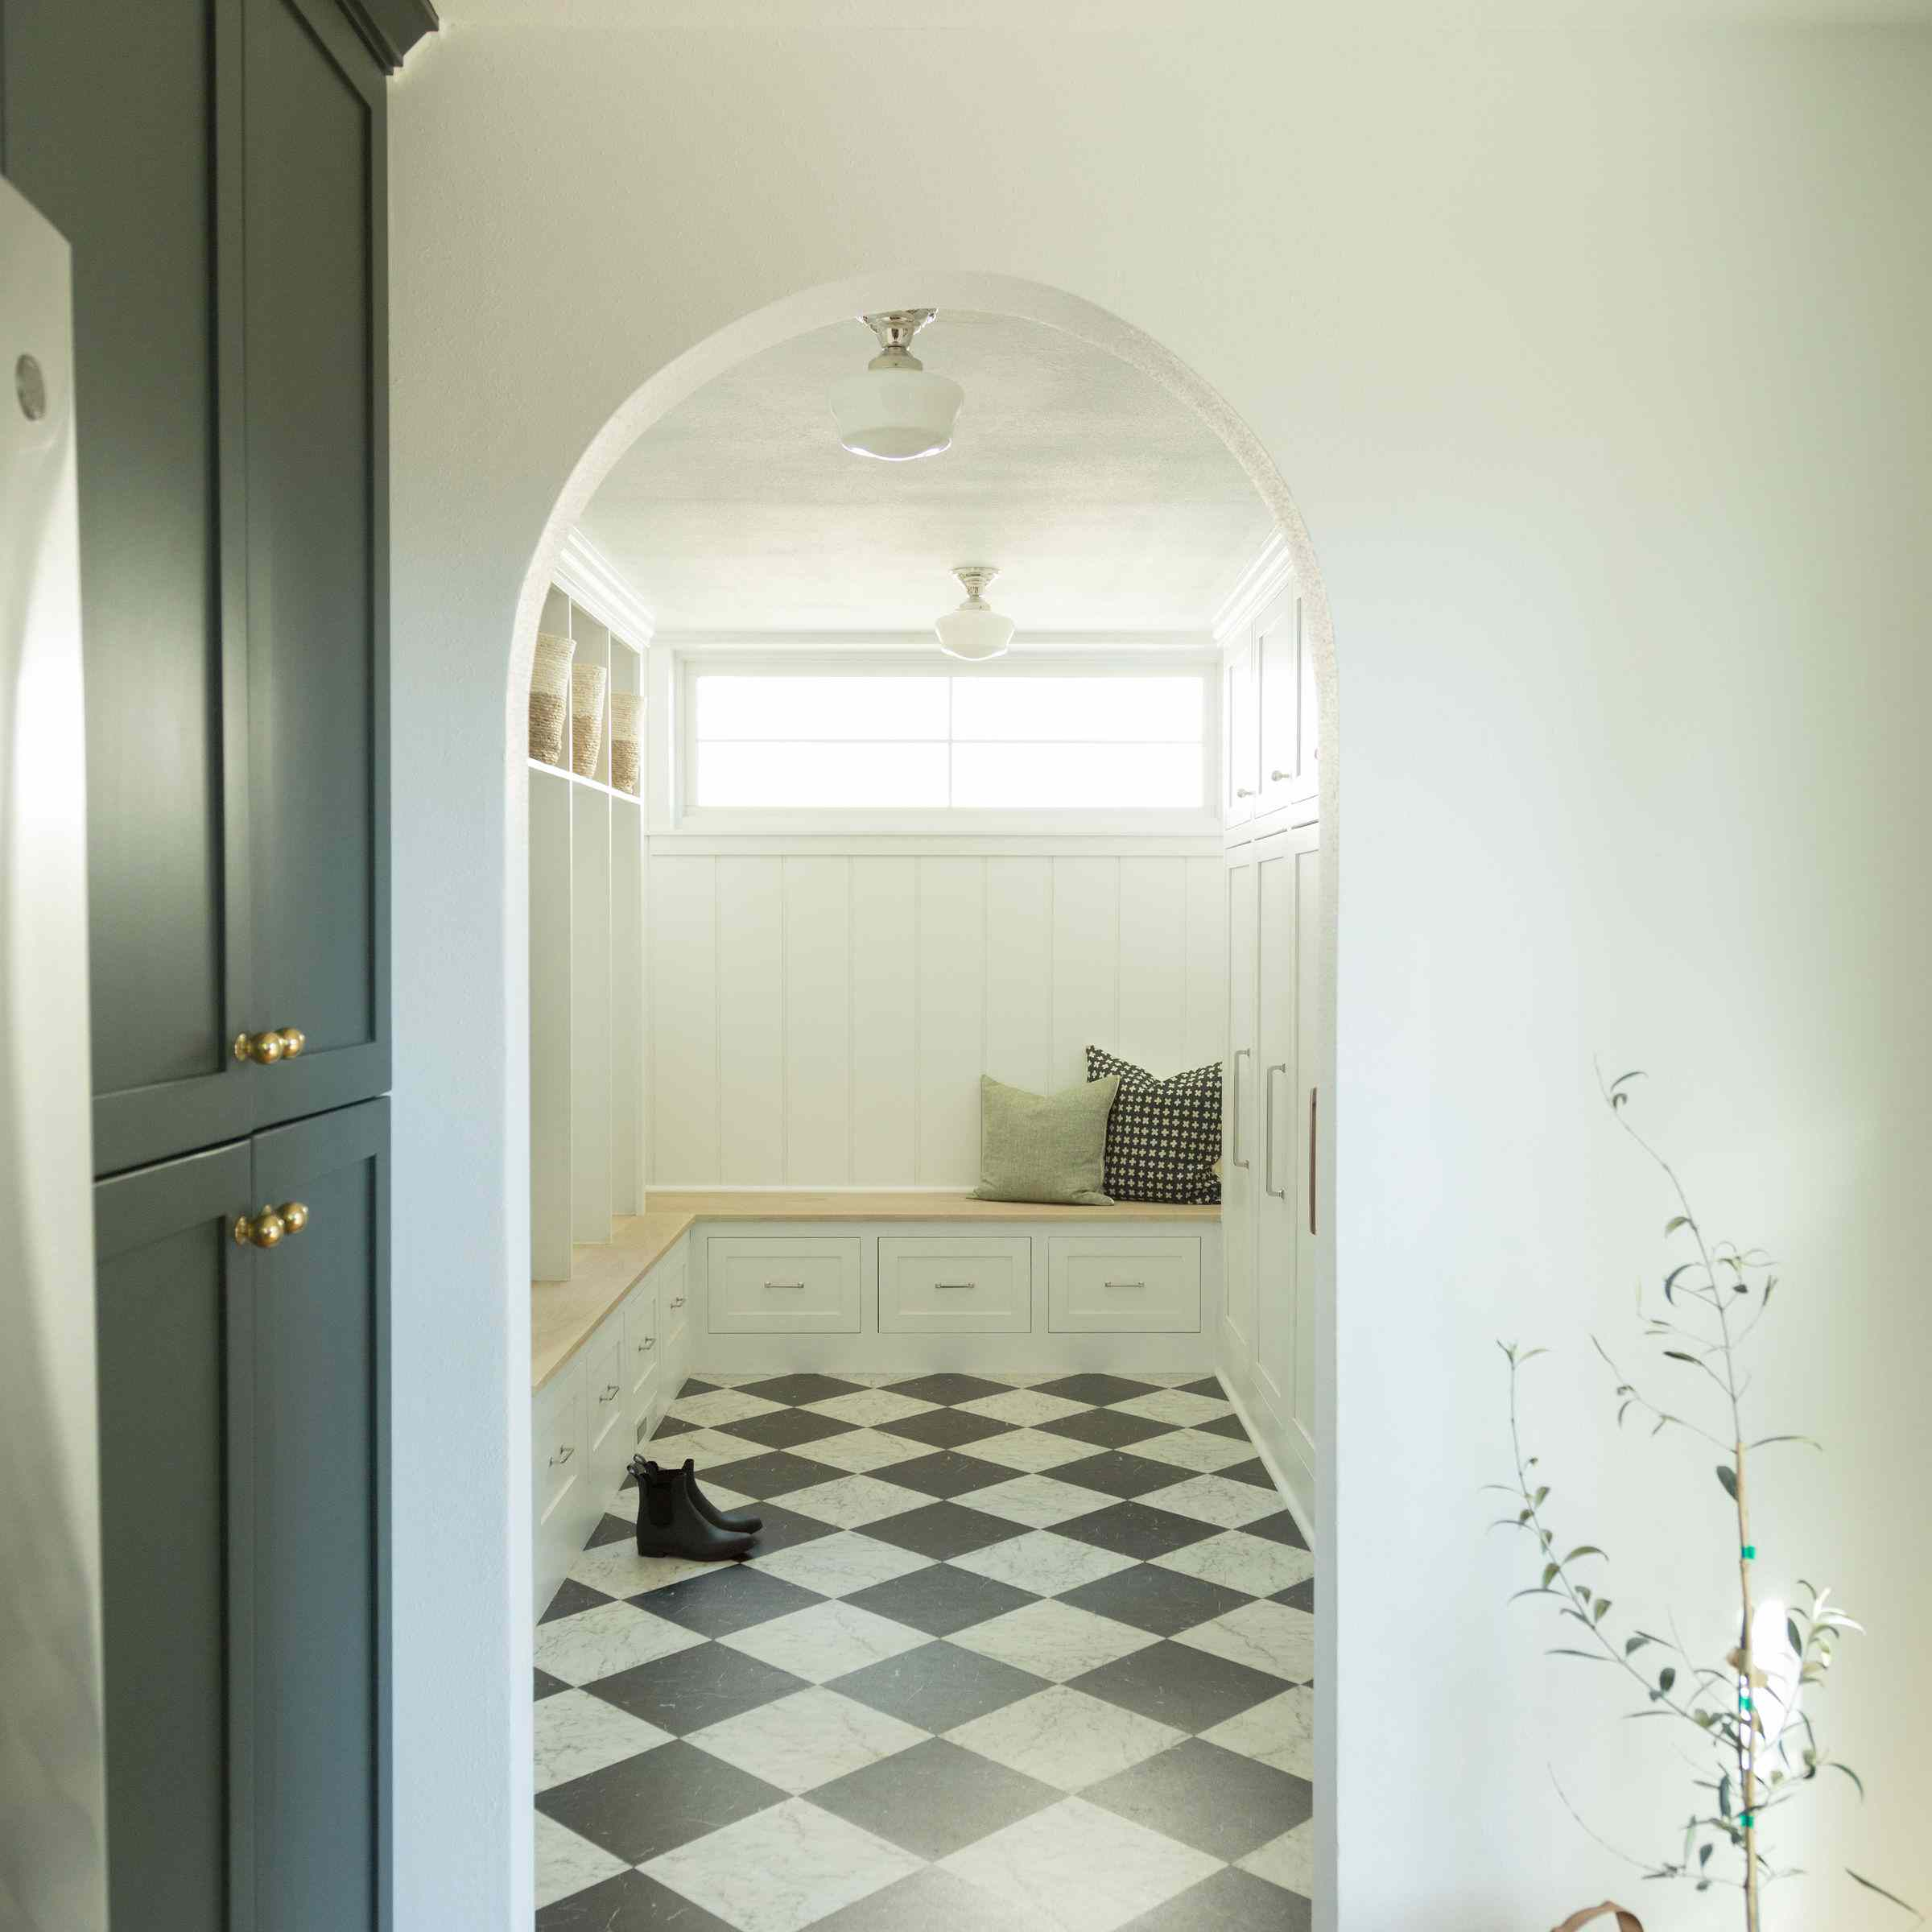 Chic mudroom with arch and checkered floor